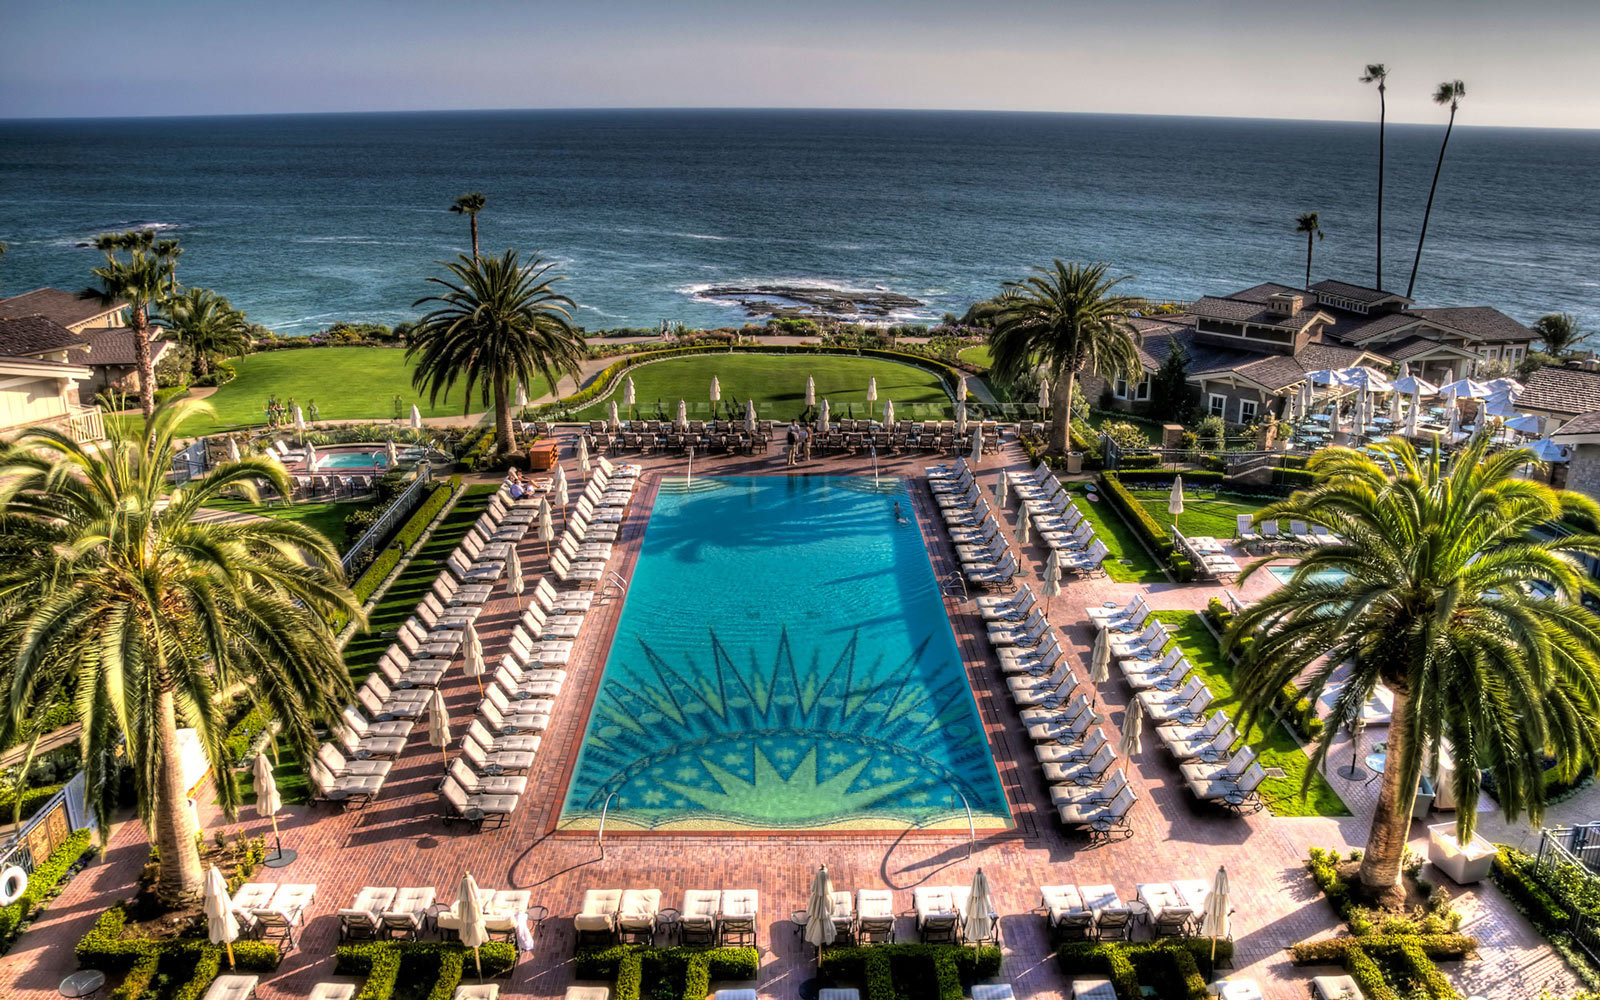 5 Favorite Hotels in Laguna Beach | Travel + Leisure